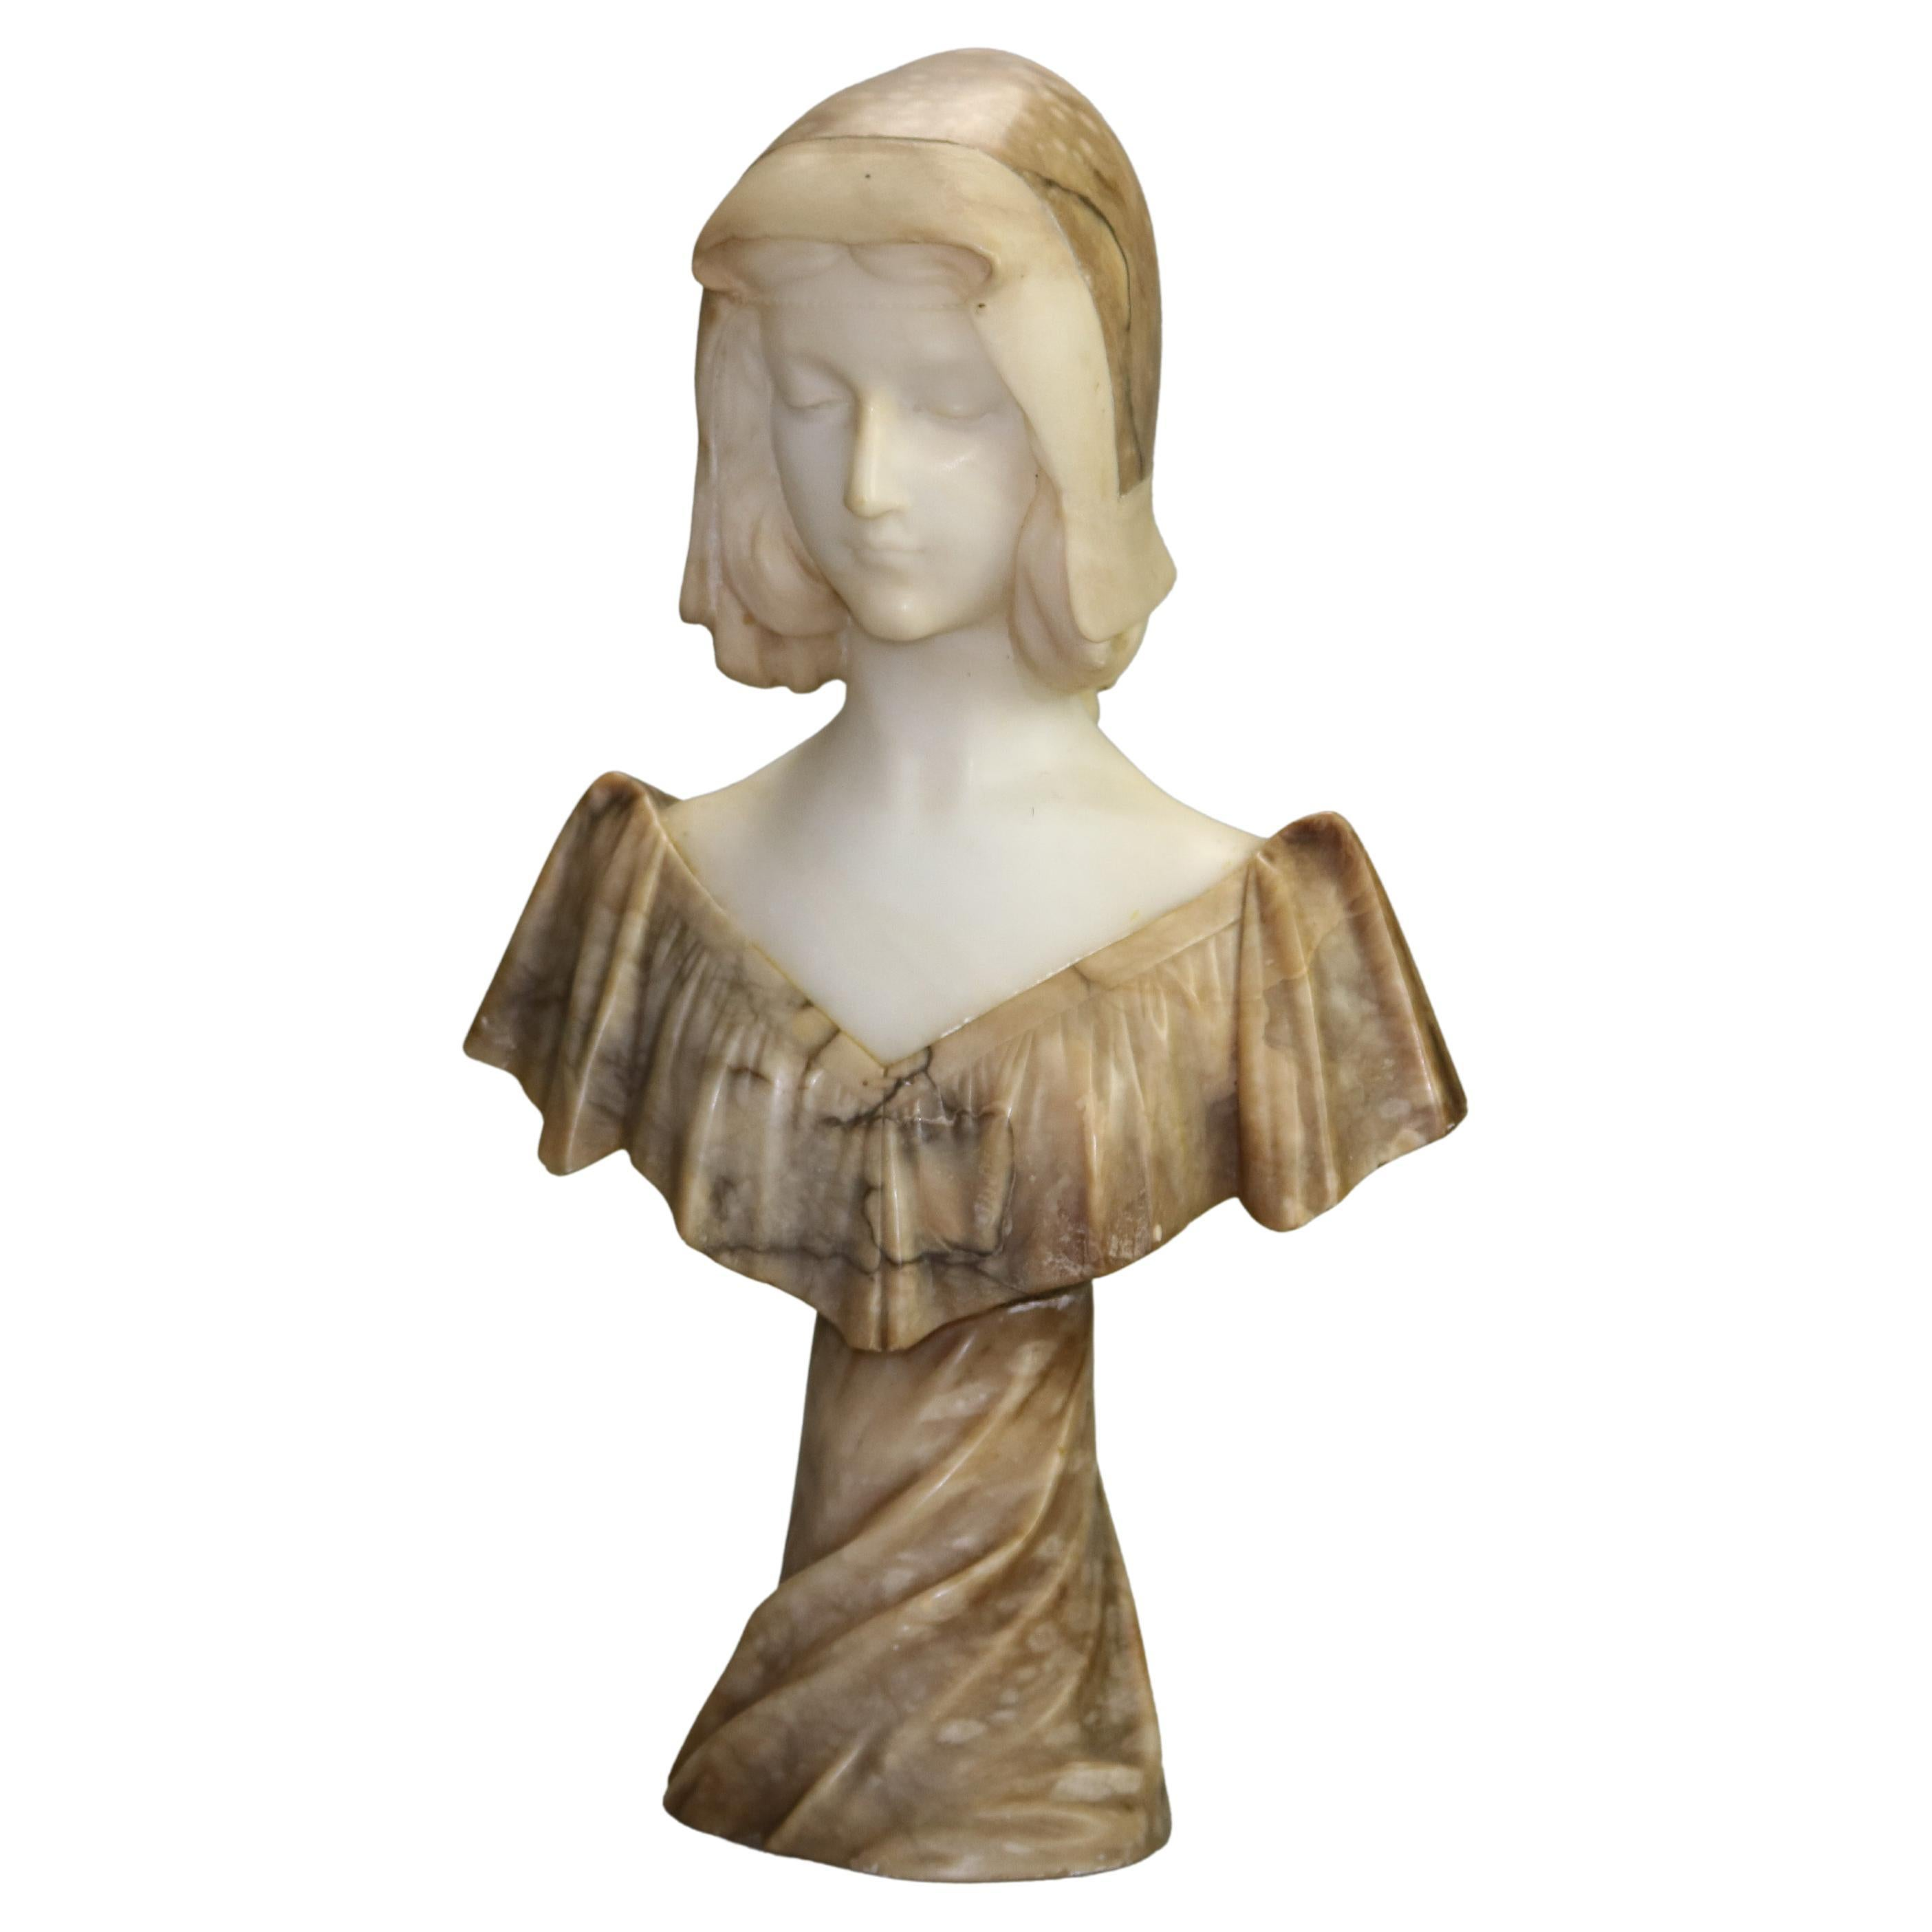 Antique Carved Marble & Alabaster Two-Tone Maiden Figure Signed A. Gennai, c1890